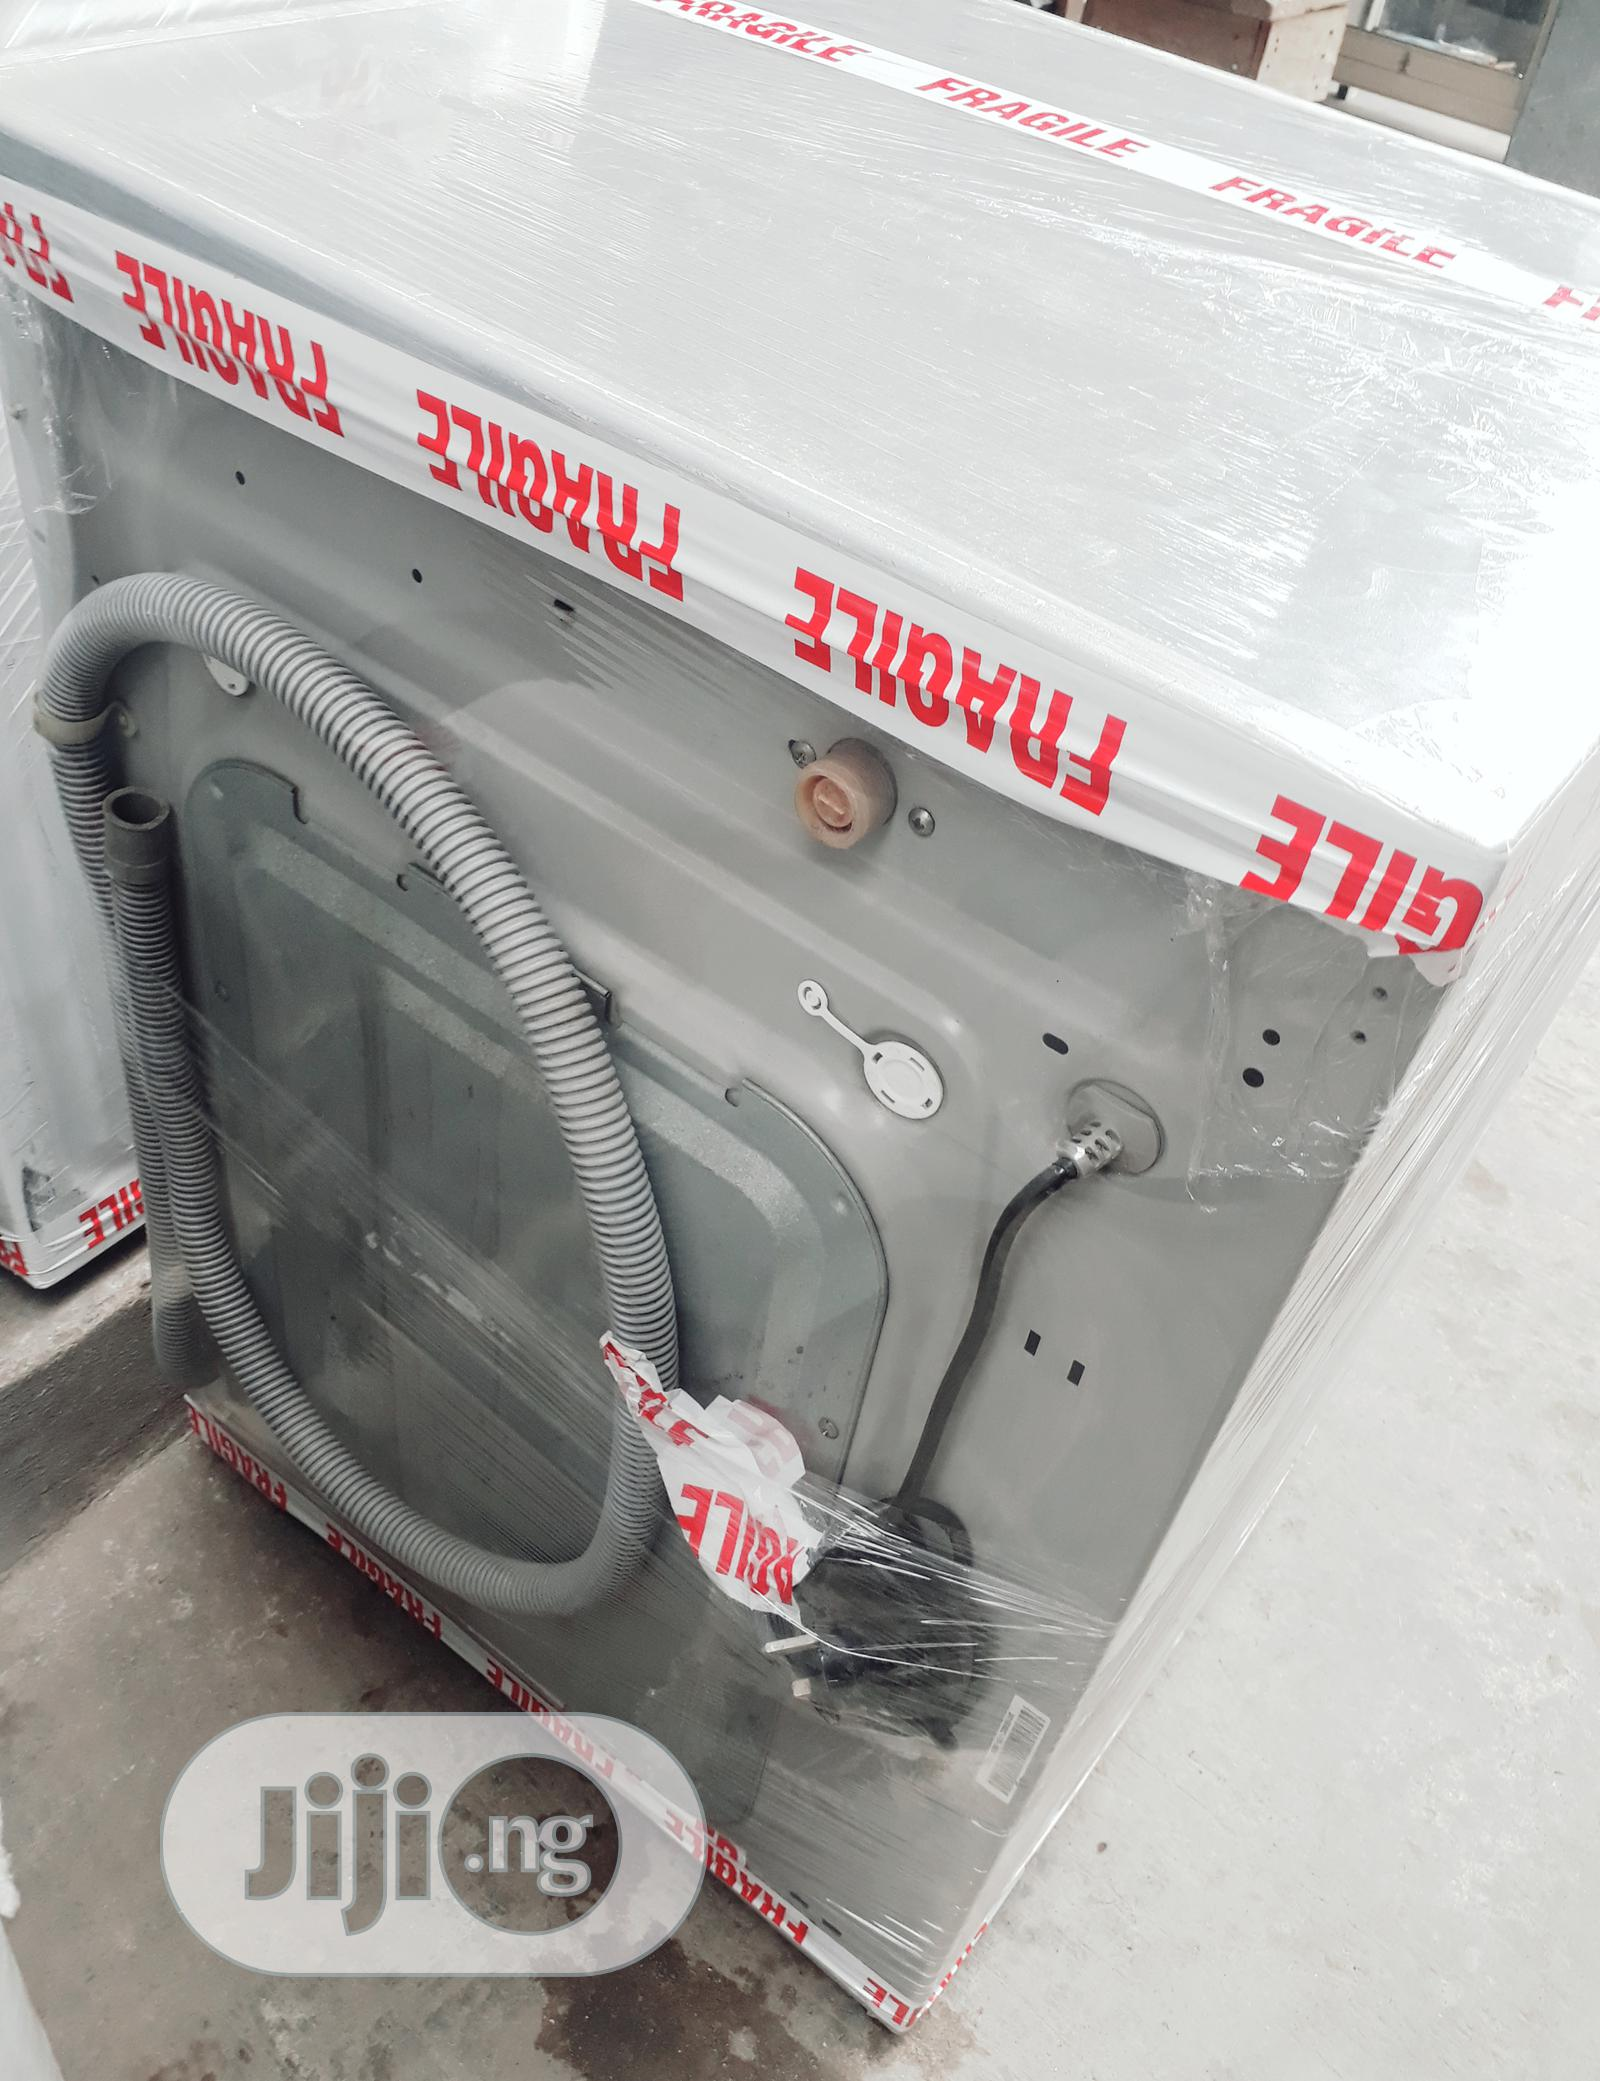 Combo LG 7kg Washing Machine Washer Dryer With 1year Warranty | Home Appliances for sale in Yaba, Lagos State, Nigeria